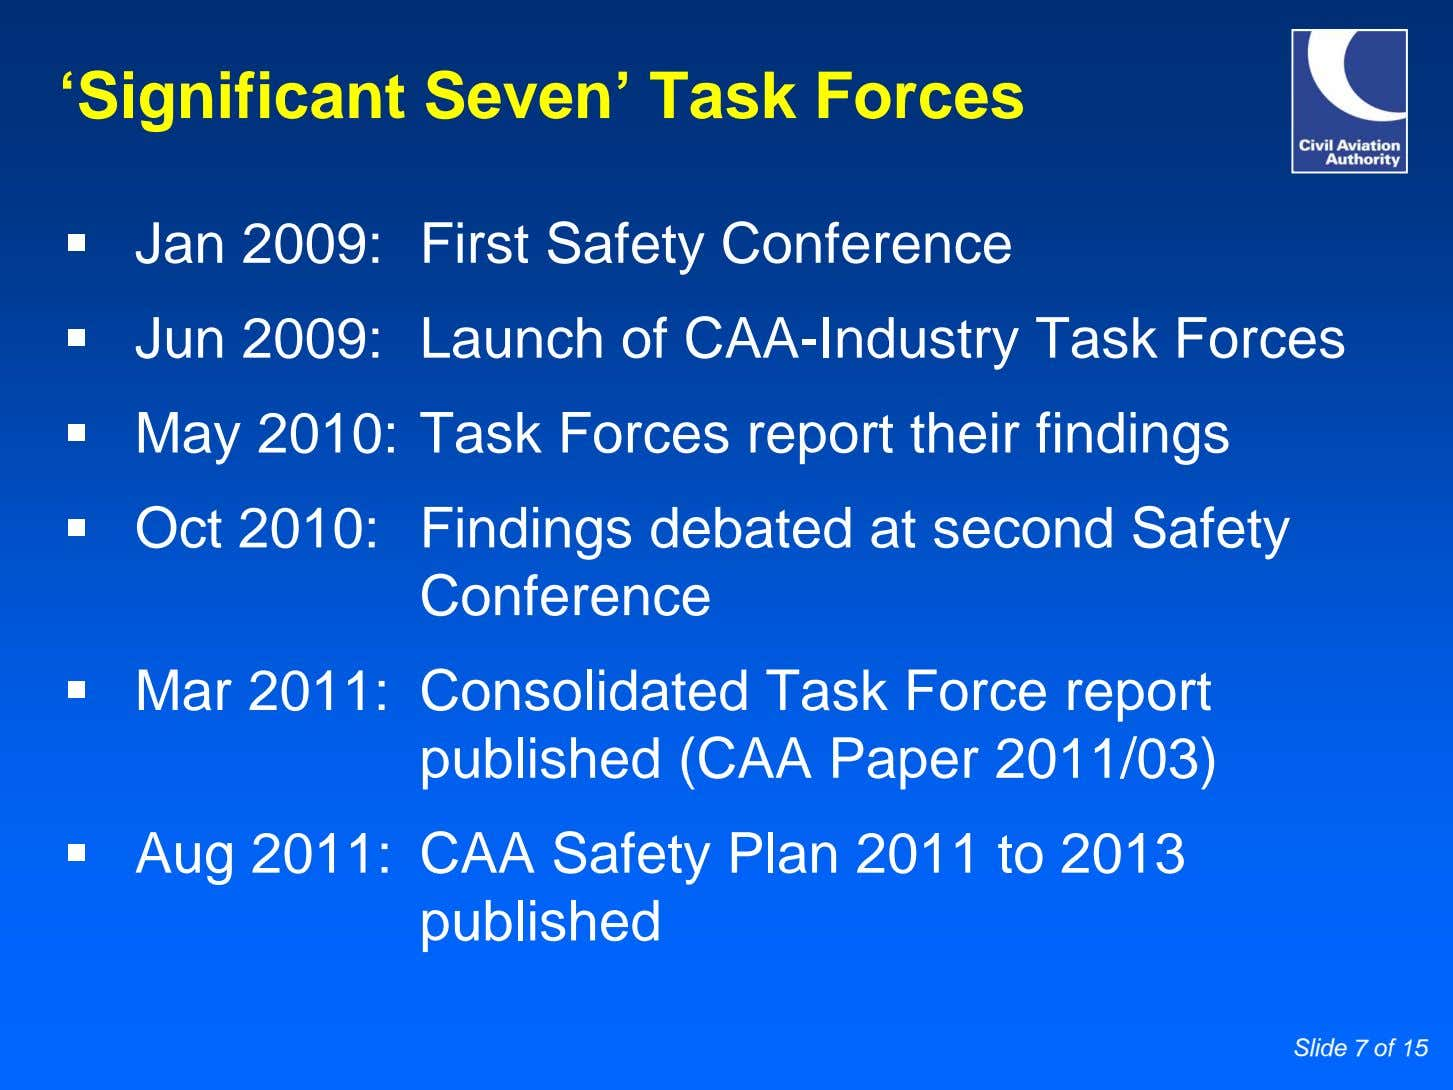 'Significant Seven' Task Forces Jan 2009: First Safety Conference Jun 2009: Launch of CAA-Industry Task